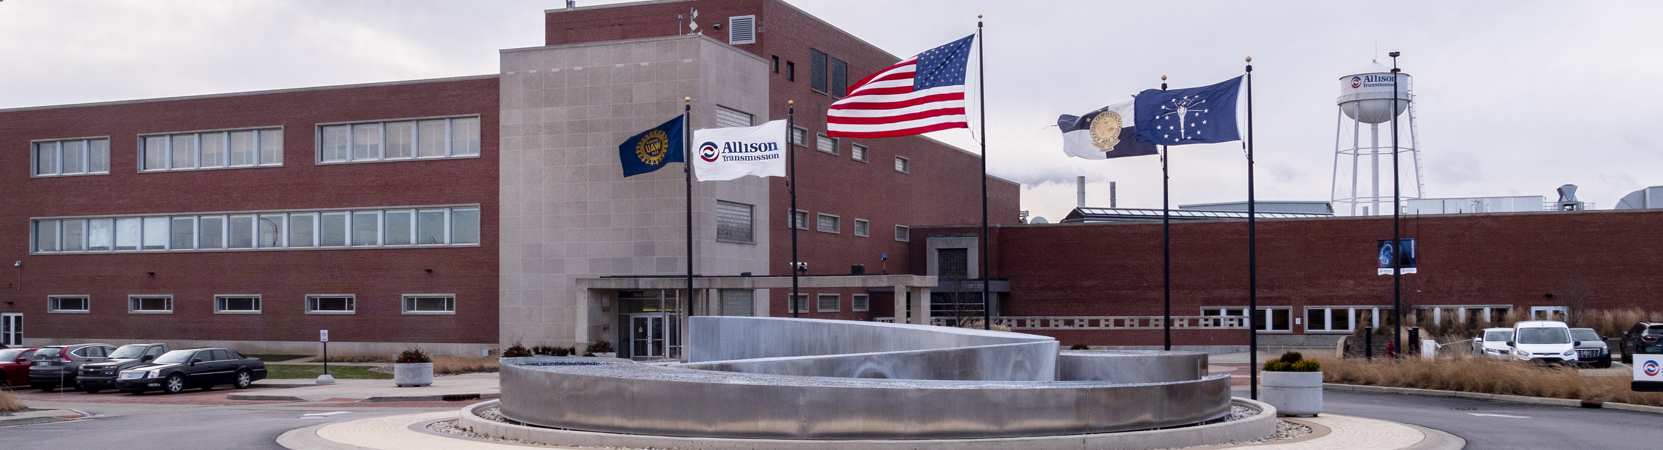 Allison Transmission Head QUarters